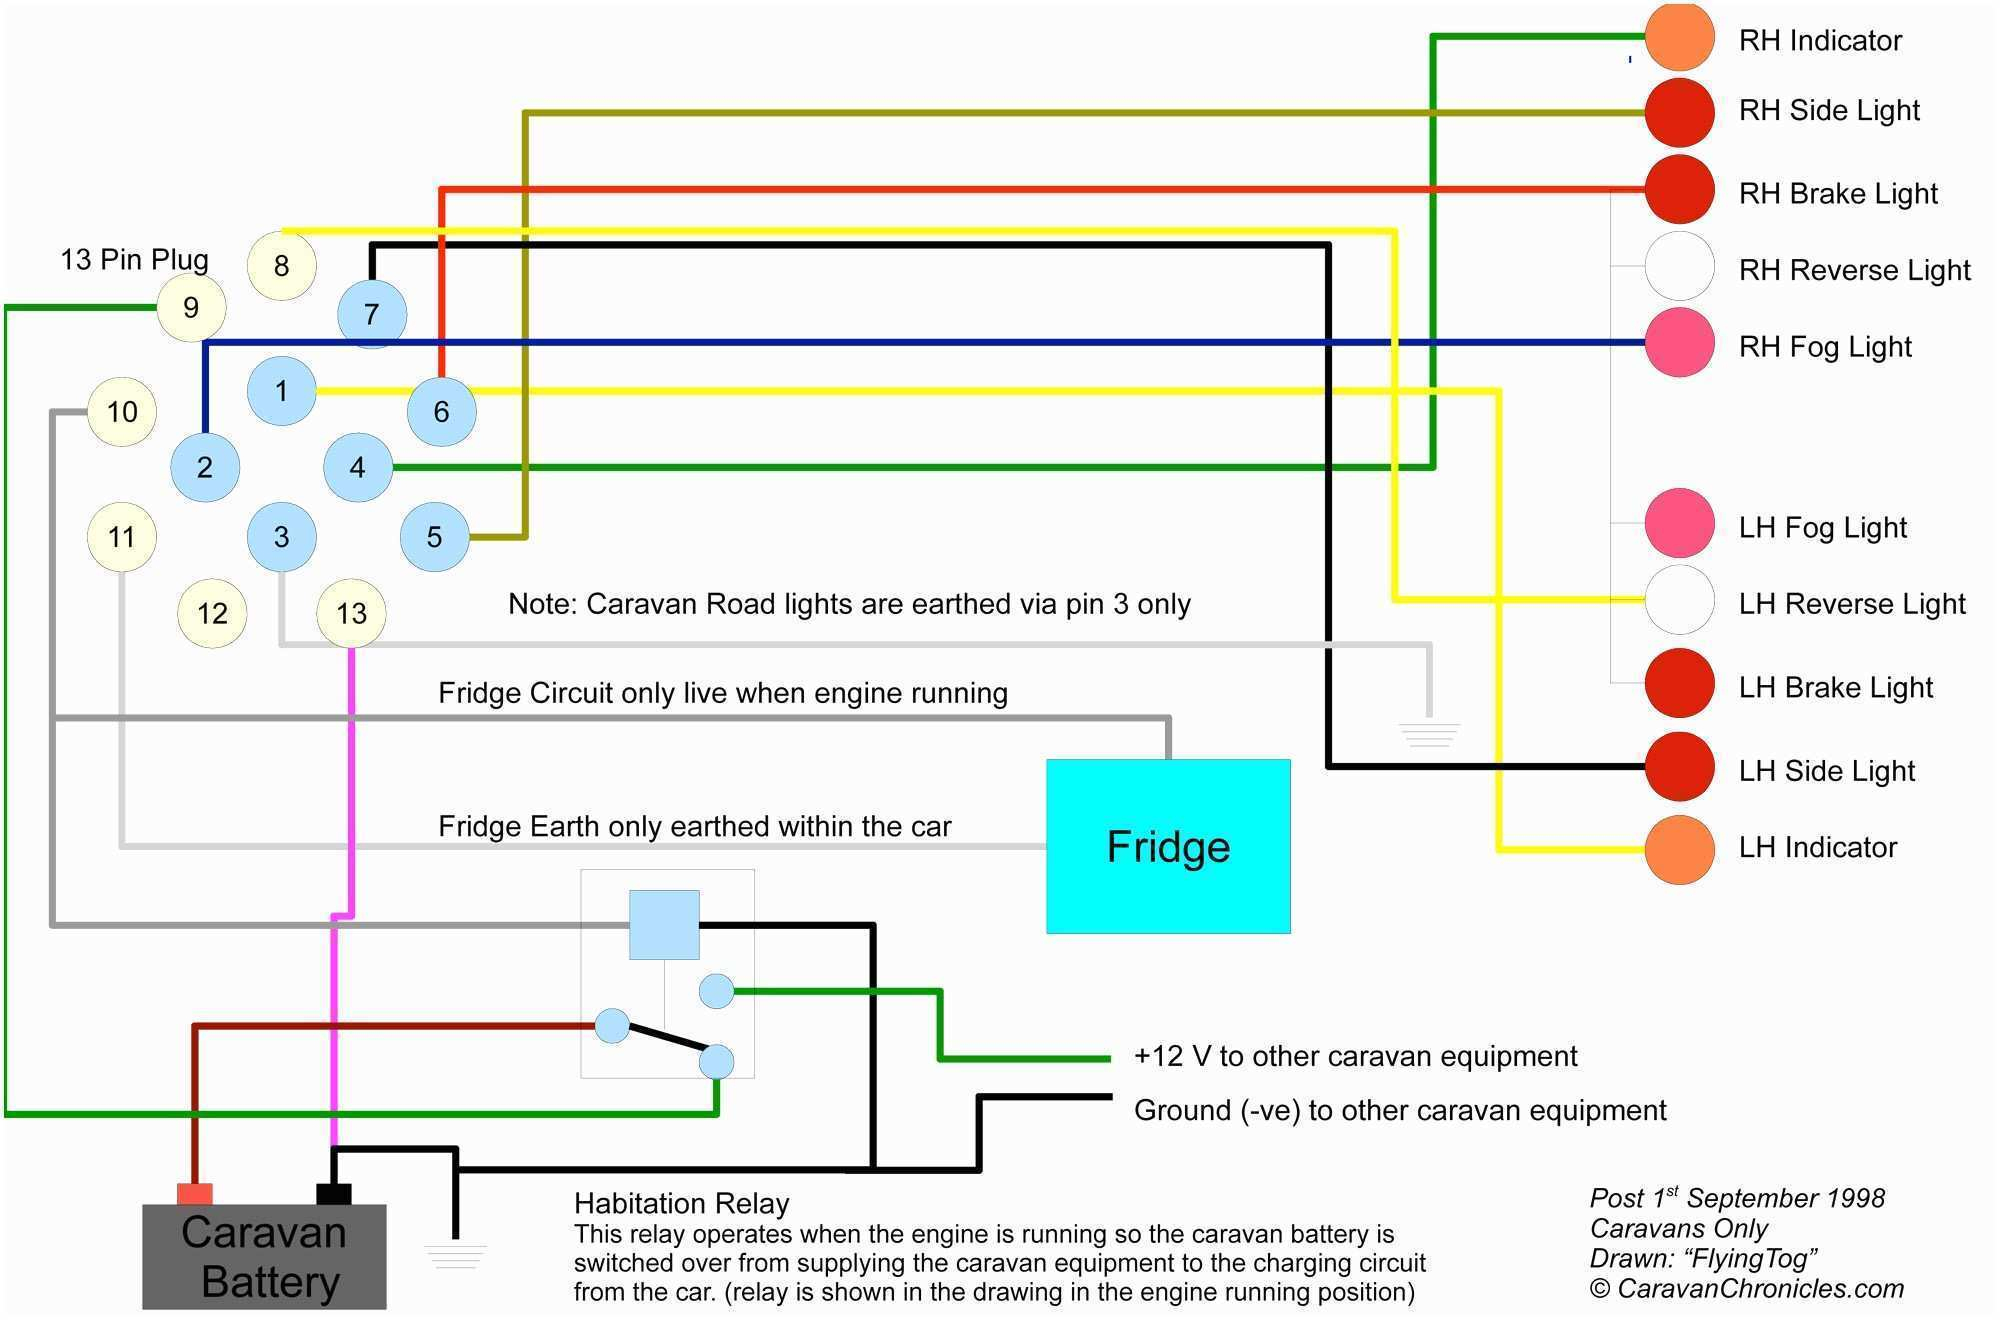 66 Fabulous Images Of 5 Wire Trailer To 4 Wire Plug | Wiring - 5 Wire Trailer Wiring Diagram